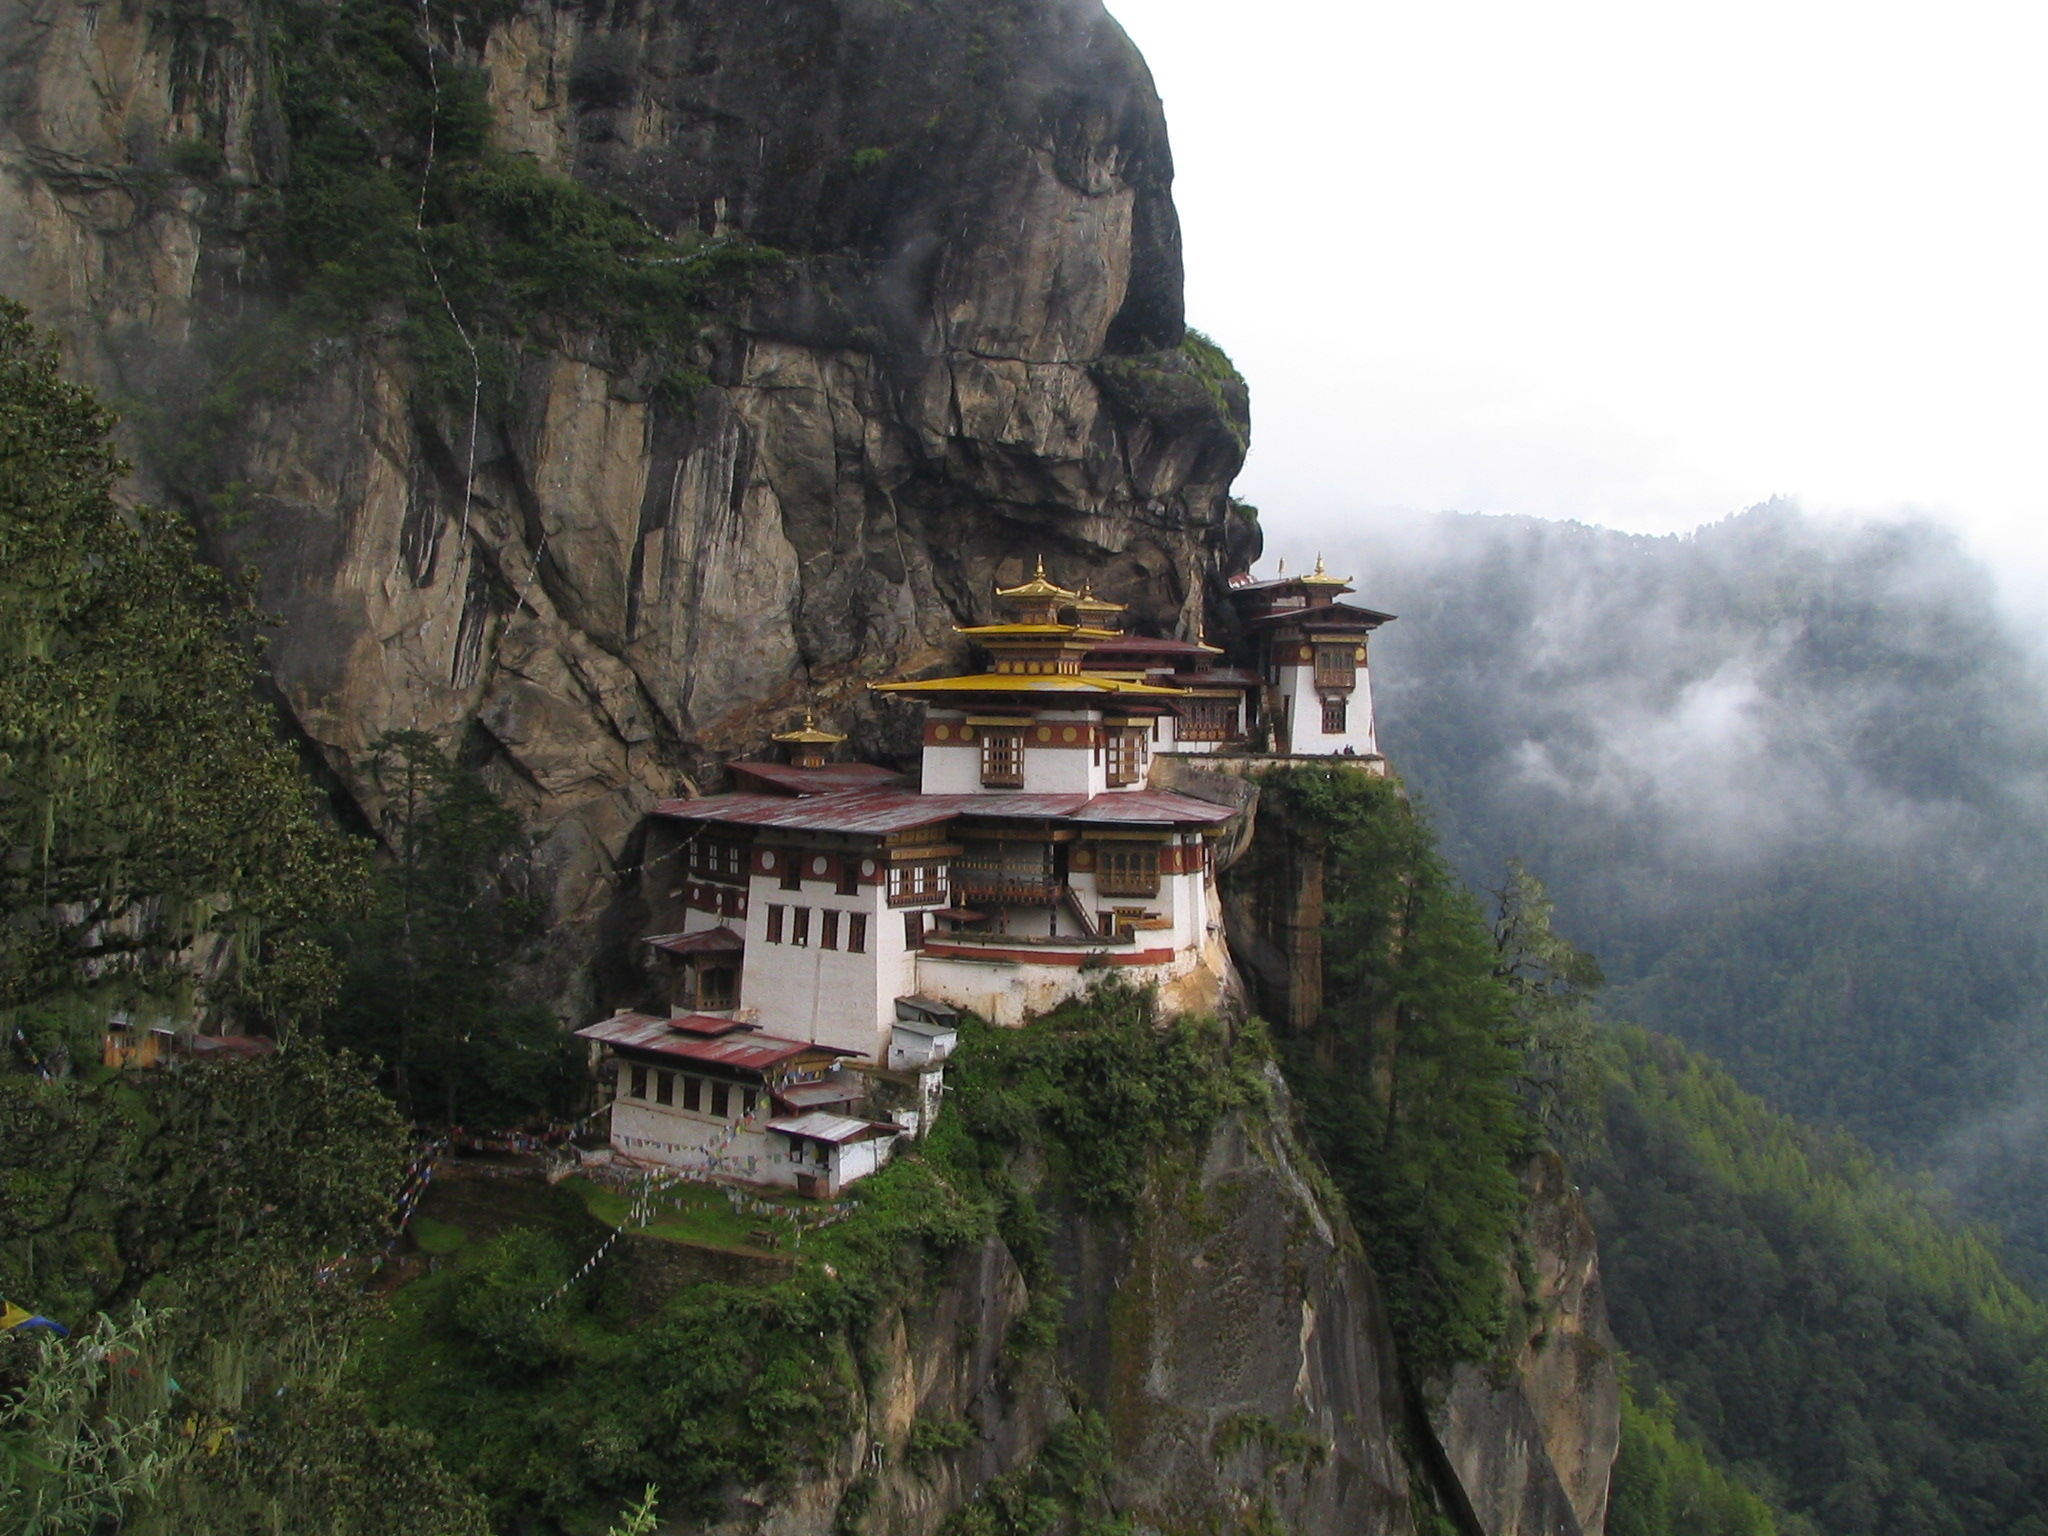 The Taktshang Monastery, also known as the